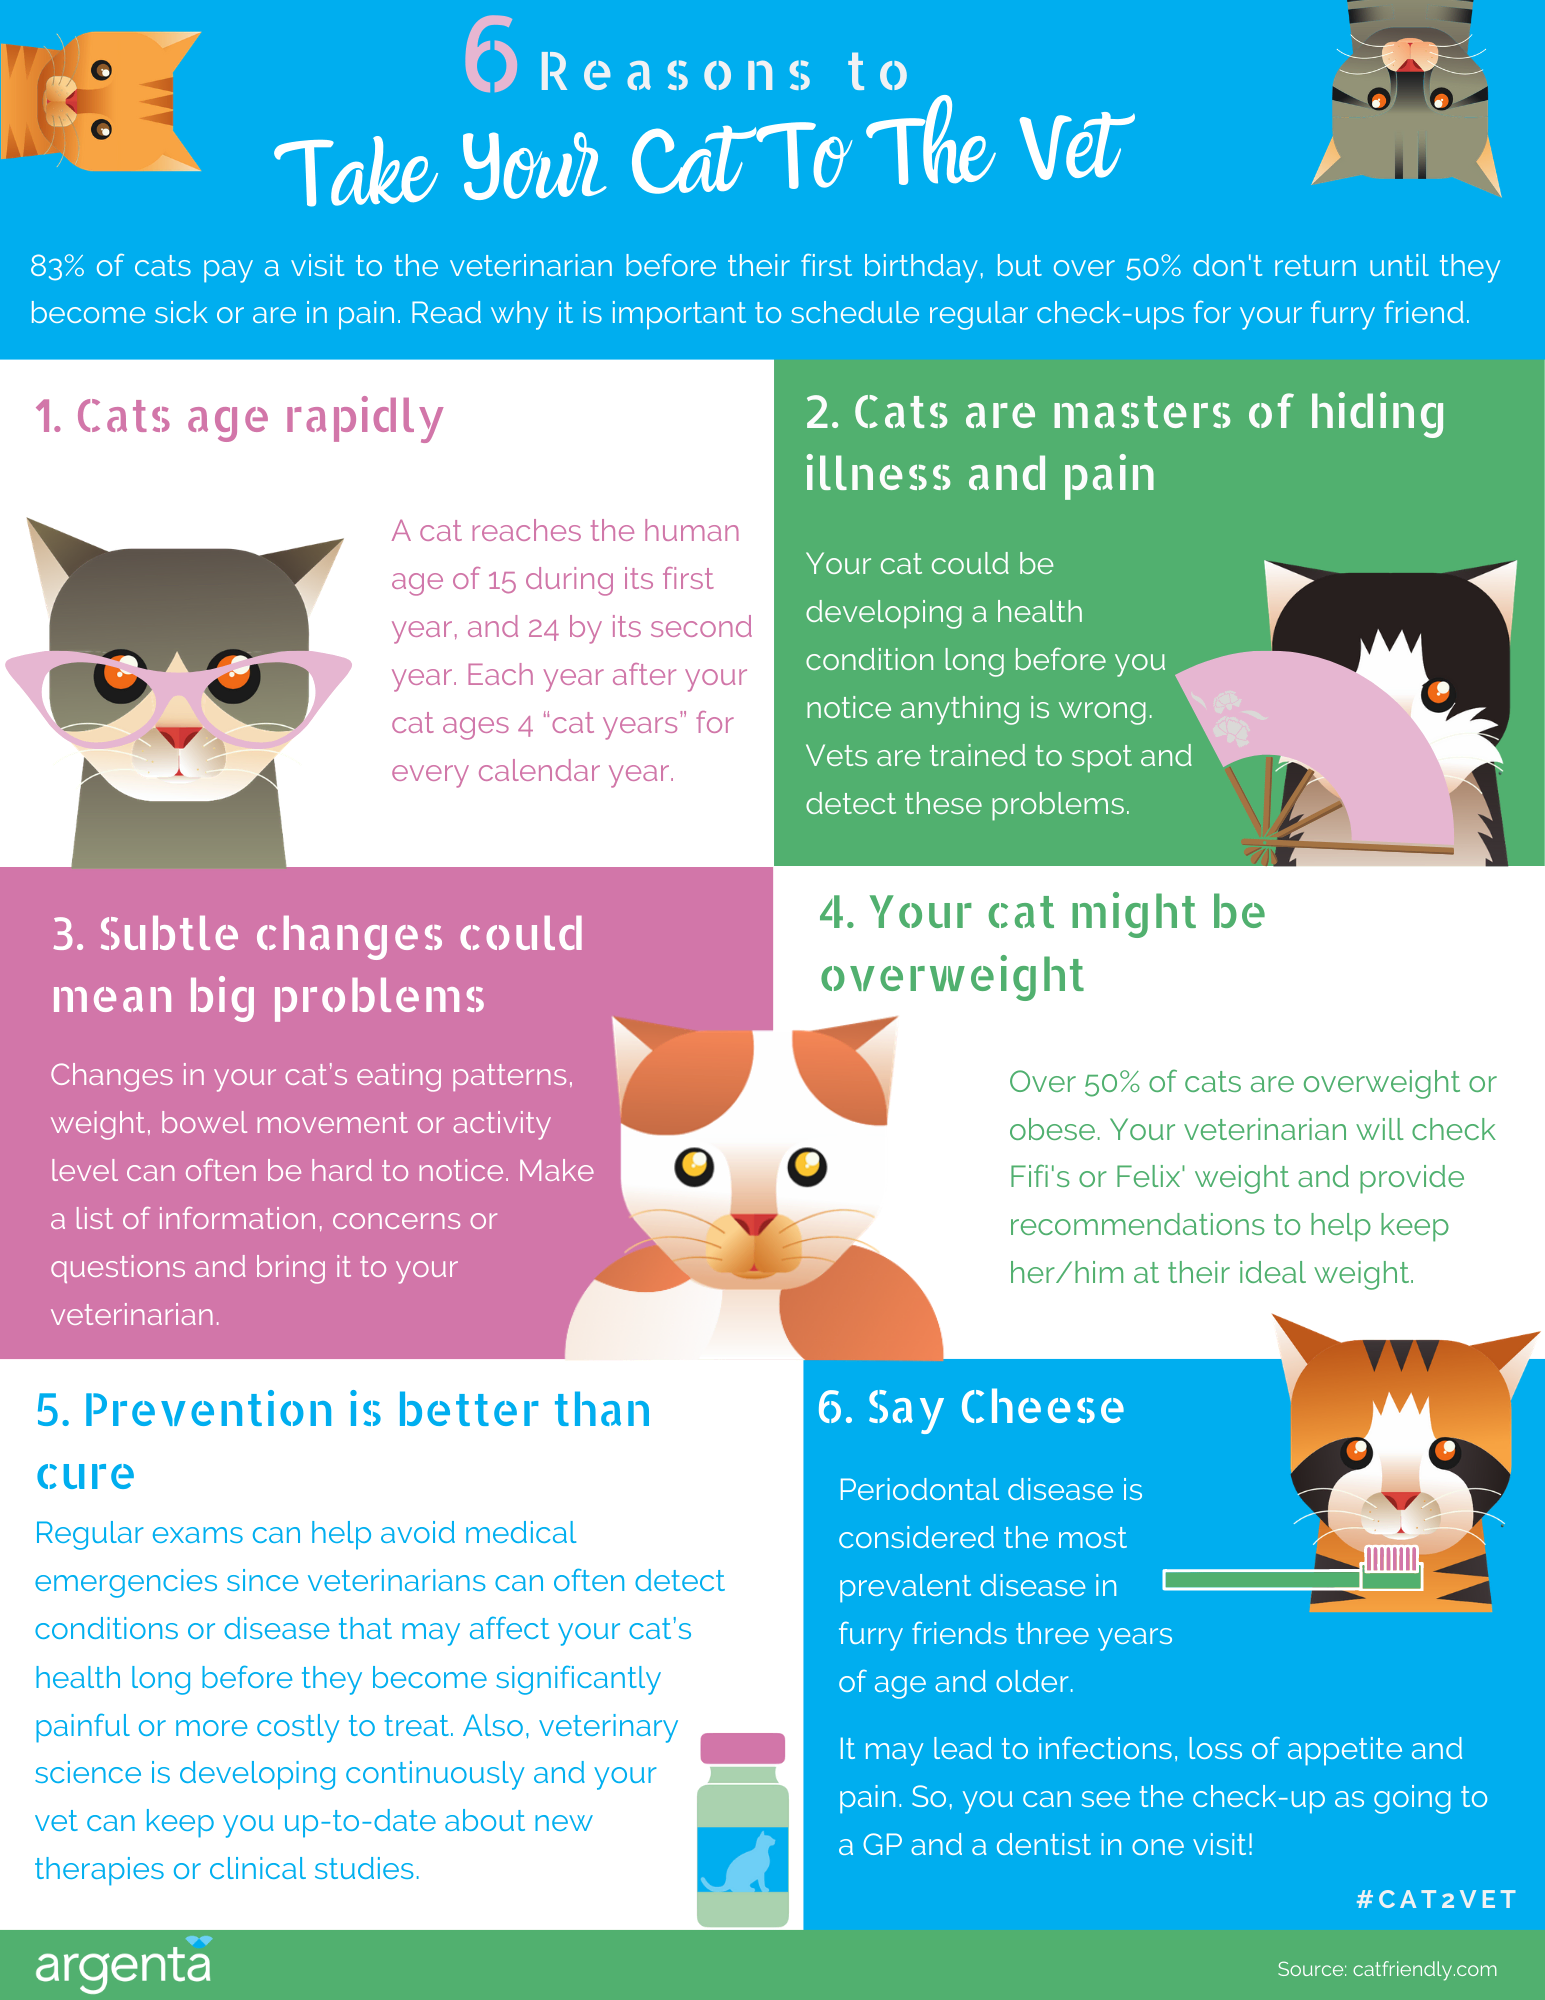 6 Reasons to Take Your Cat to the Vet